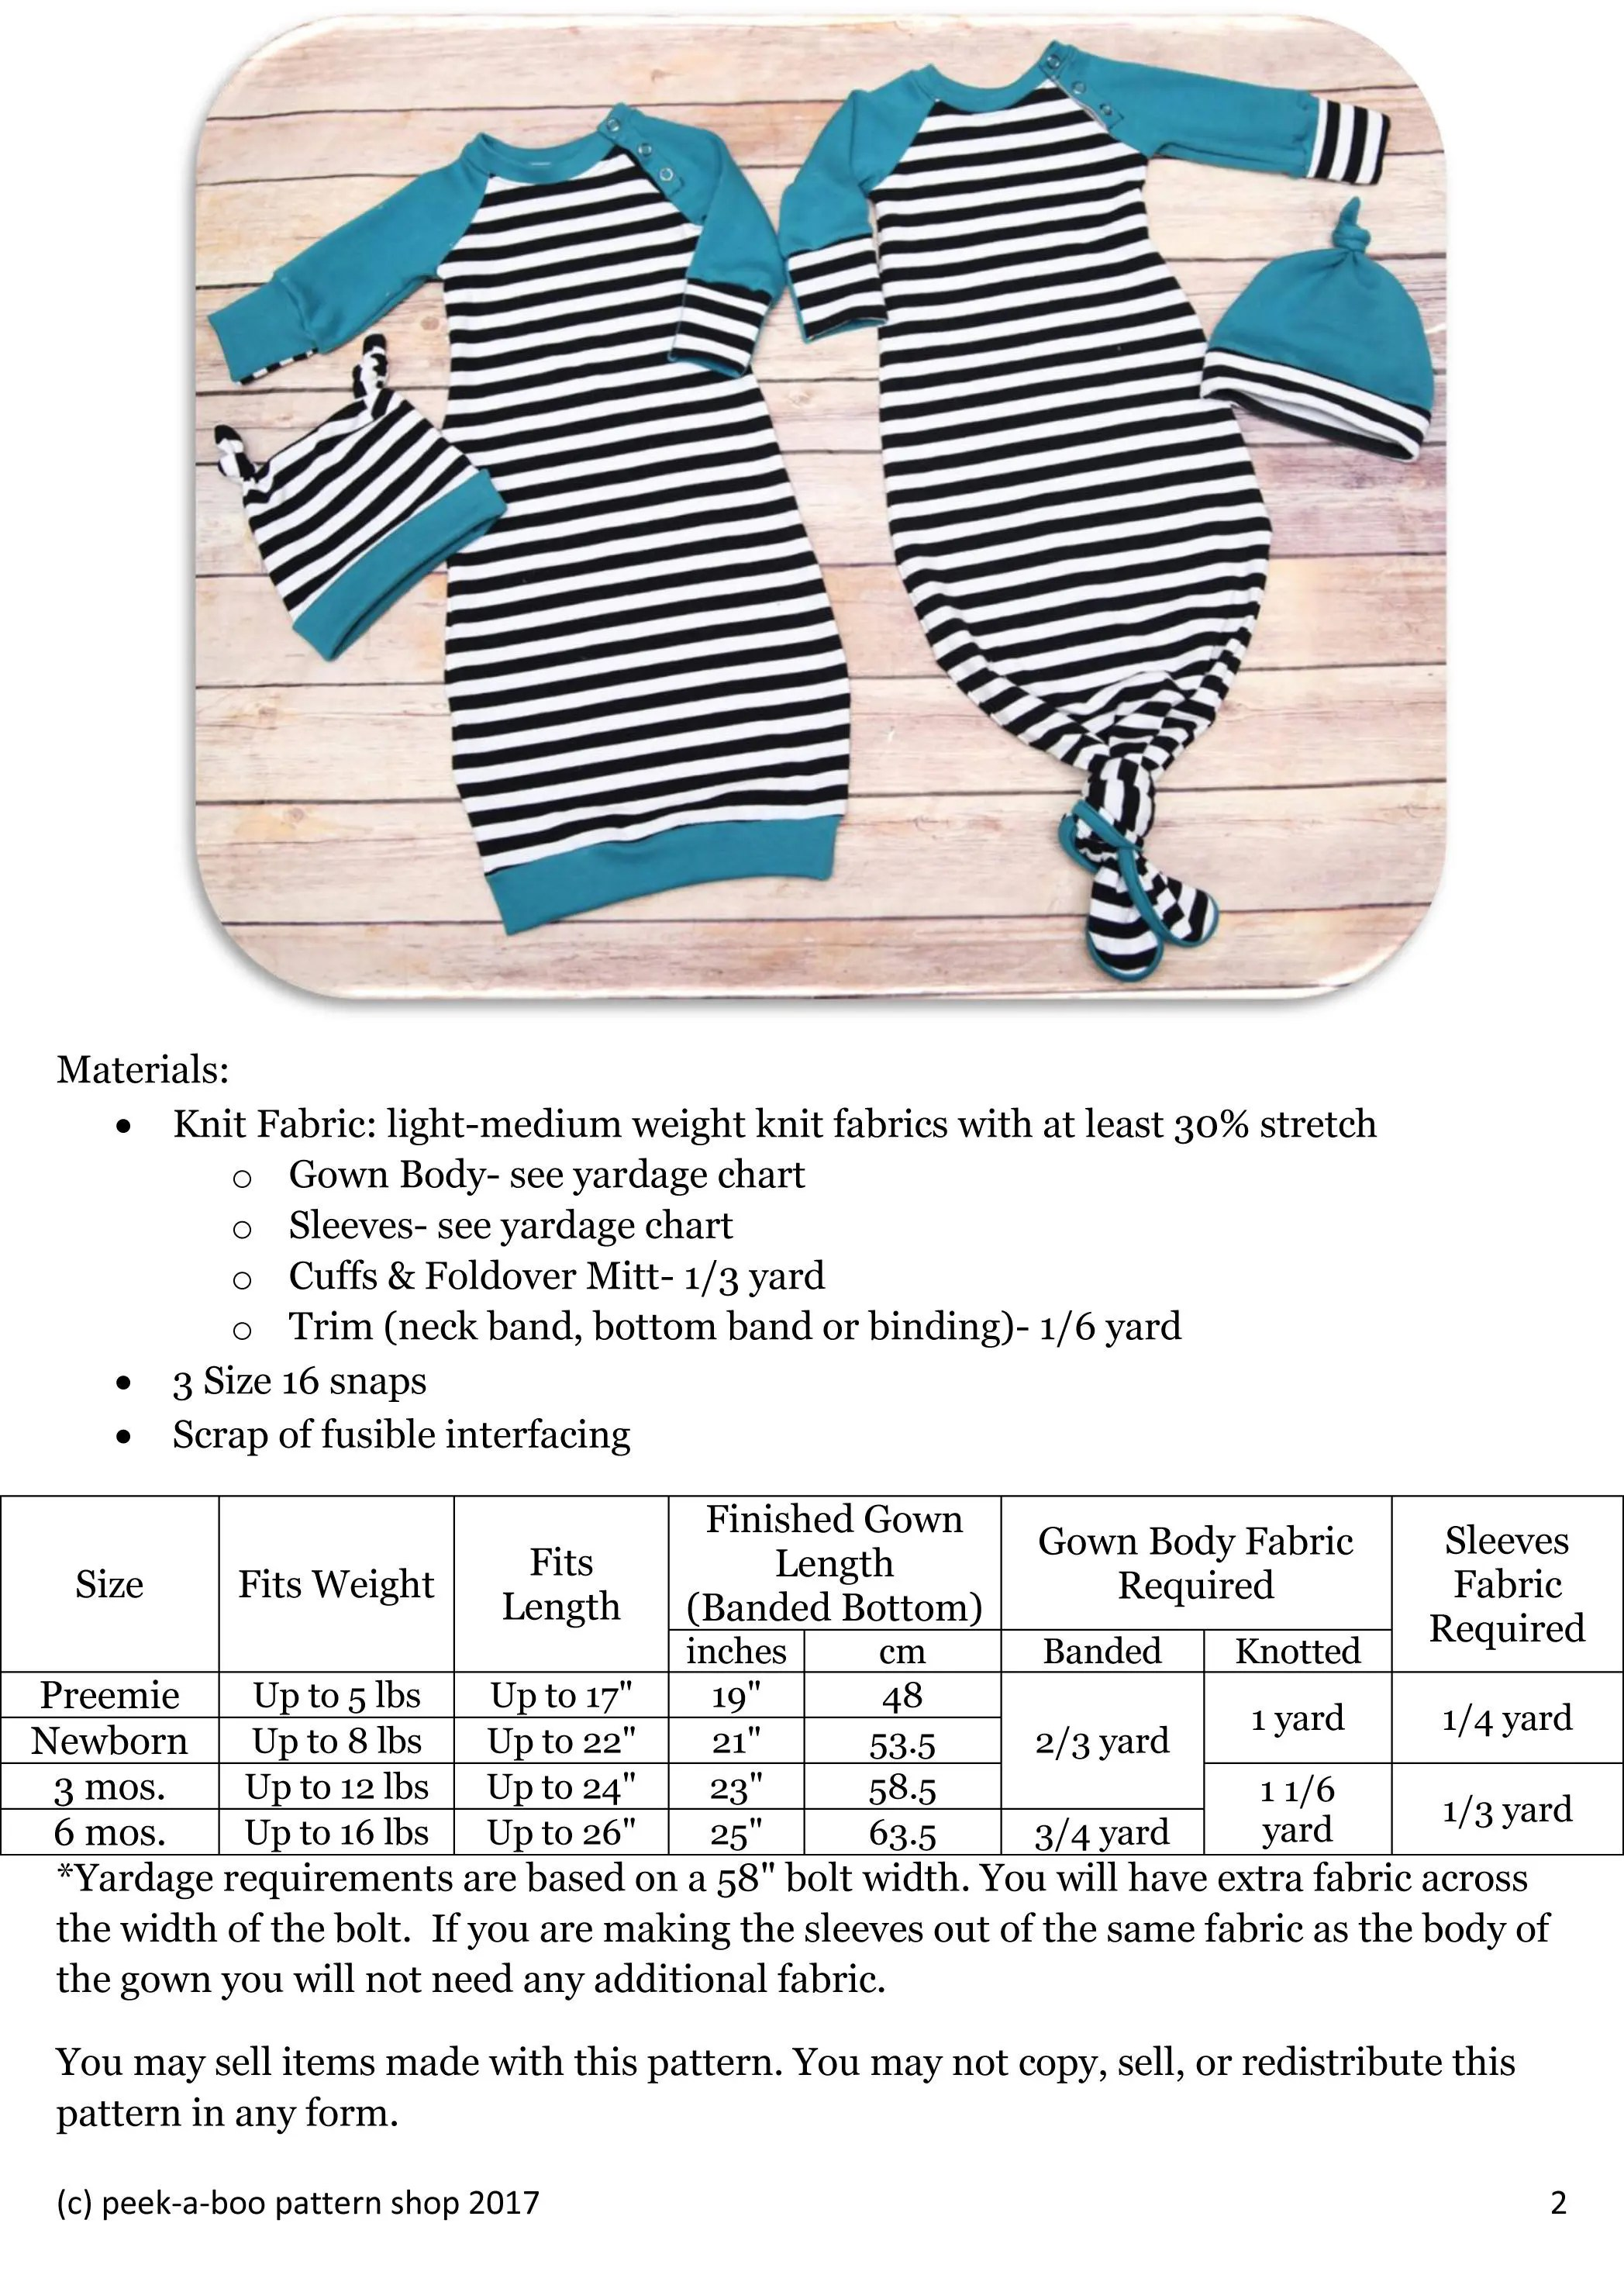 Sew On Snaps Size Chart : snaps, chart, Lullaby, Knotted, Sewing, Pattern: